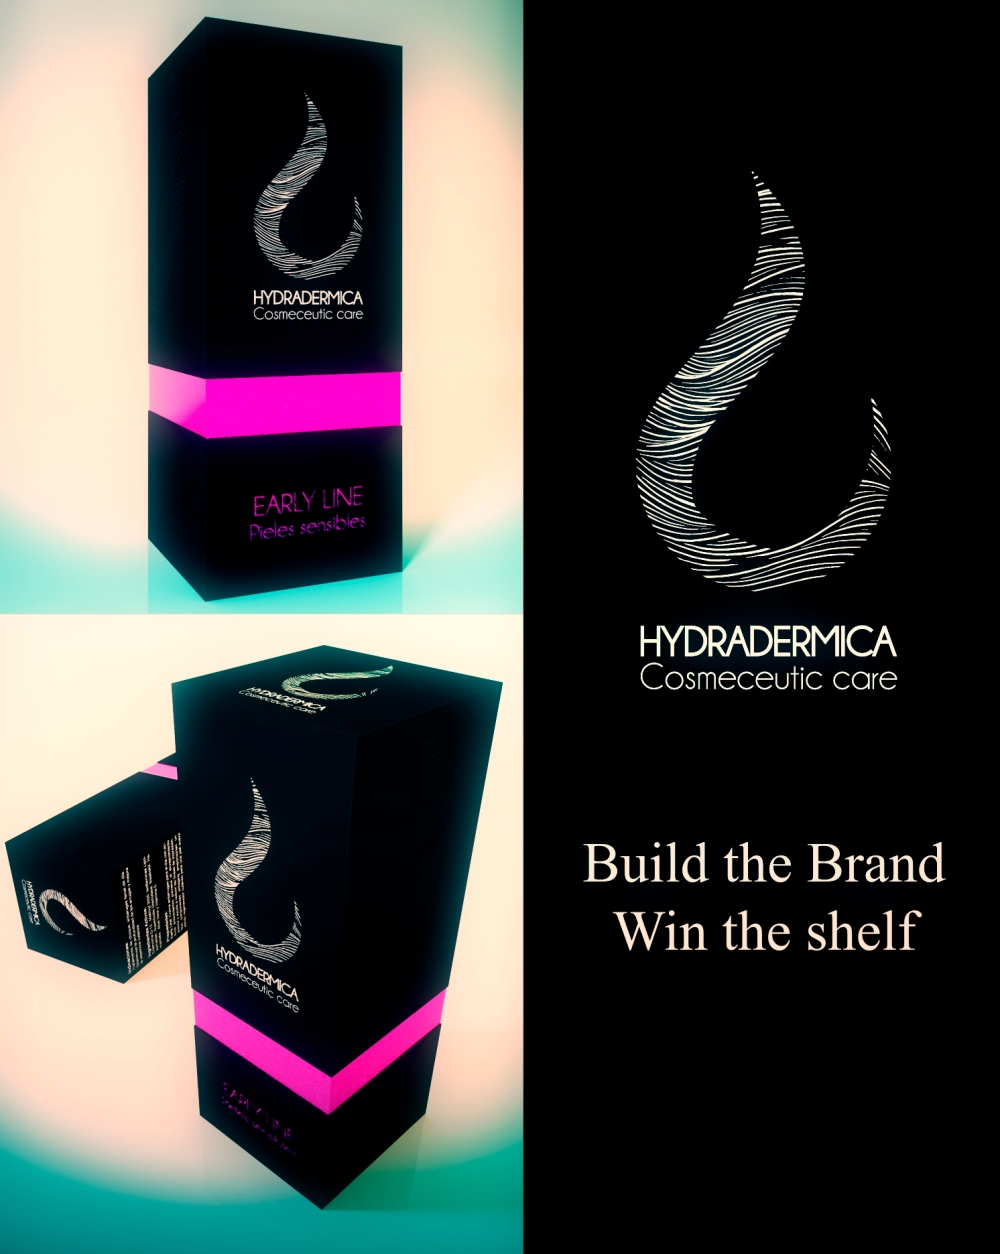 hydradermica-product